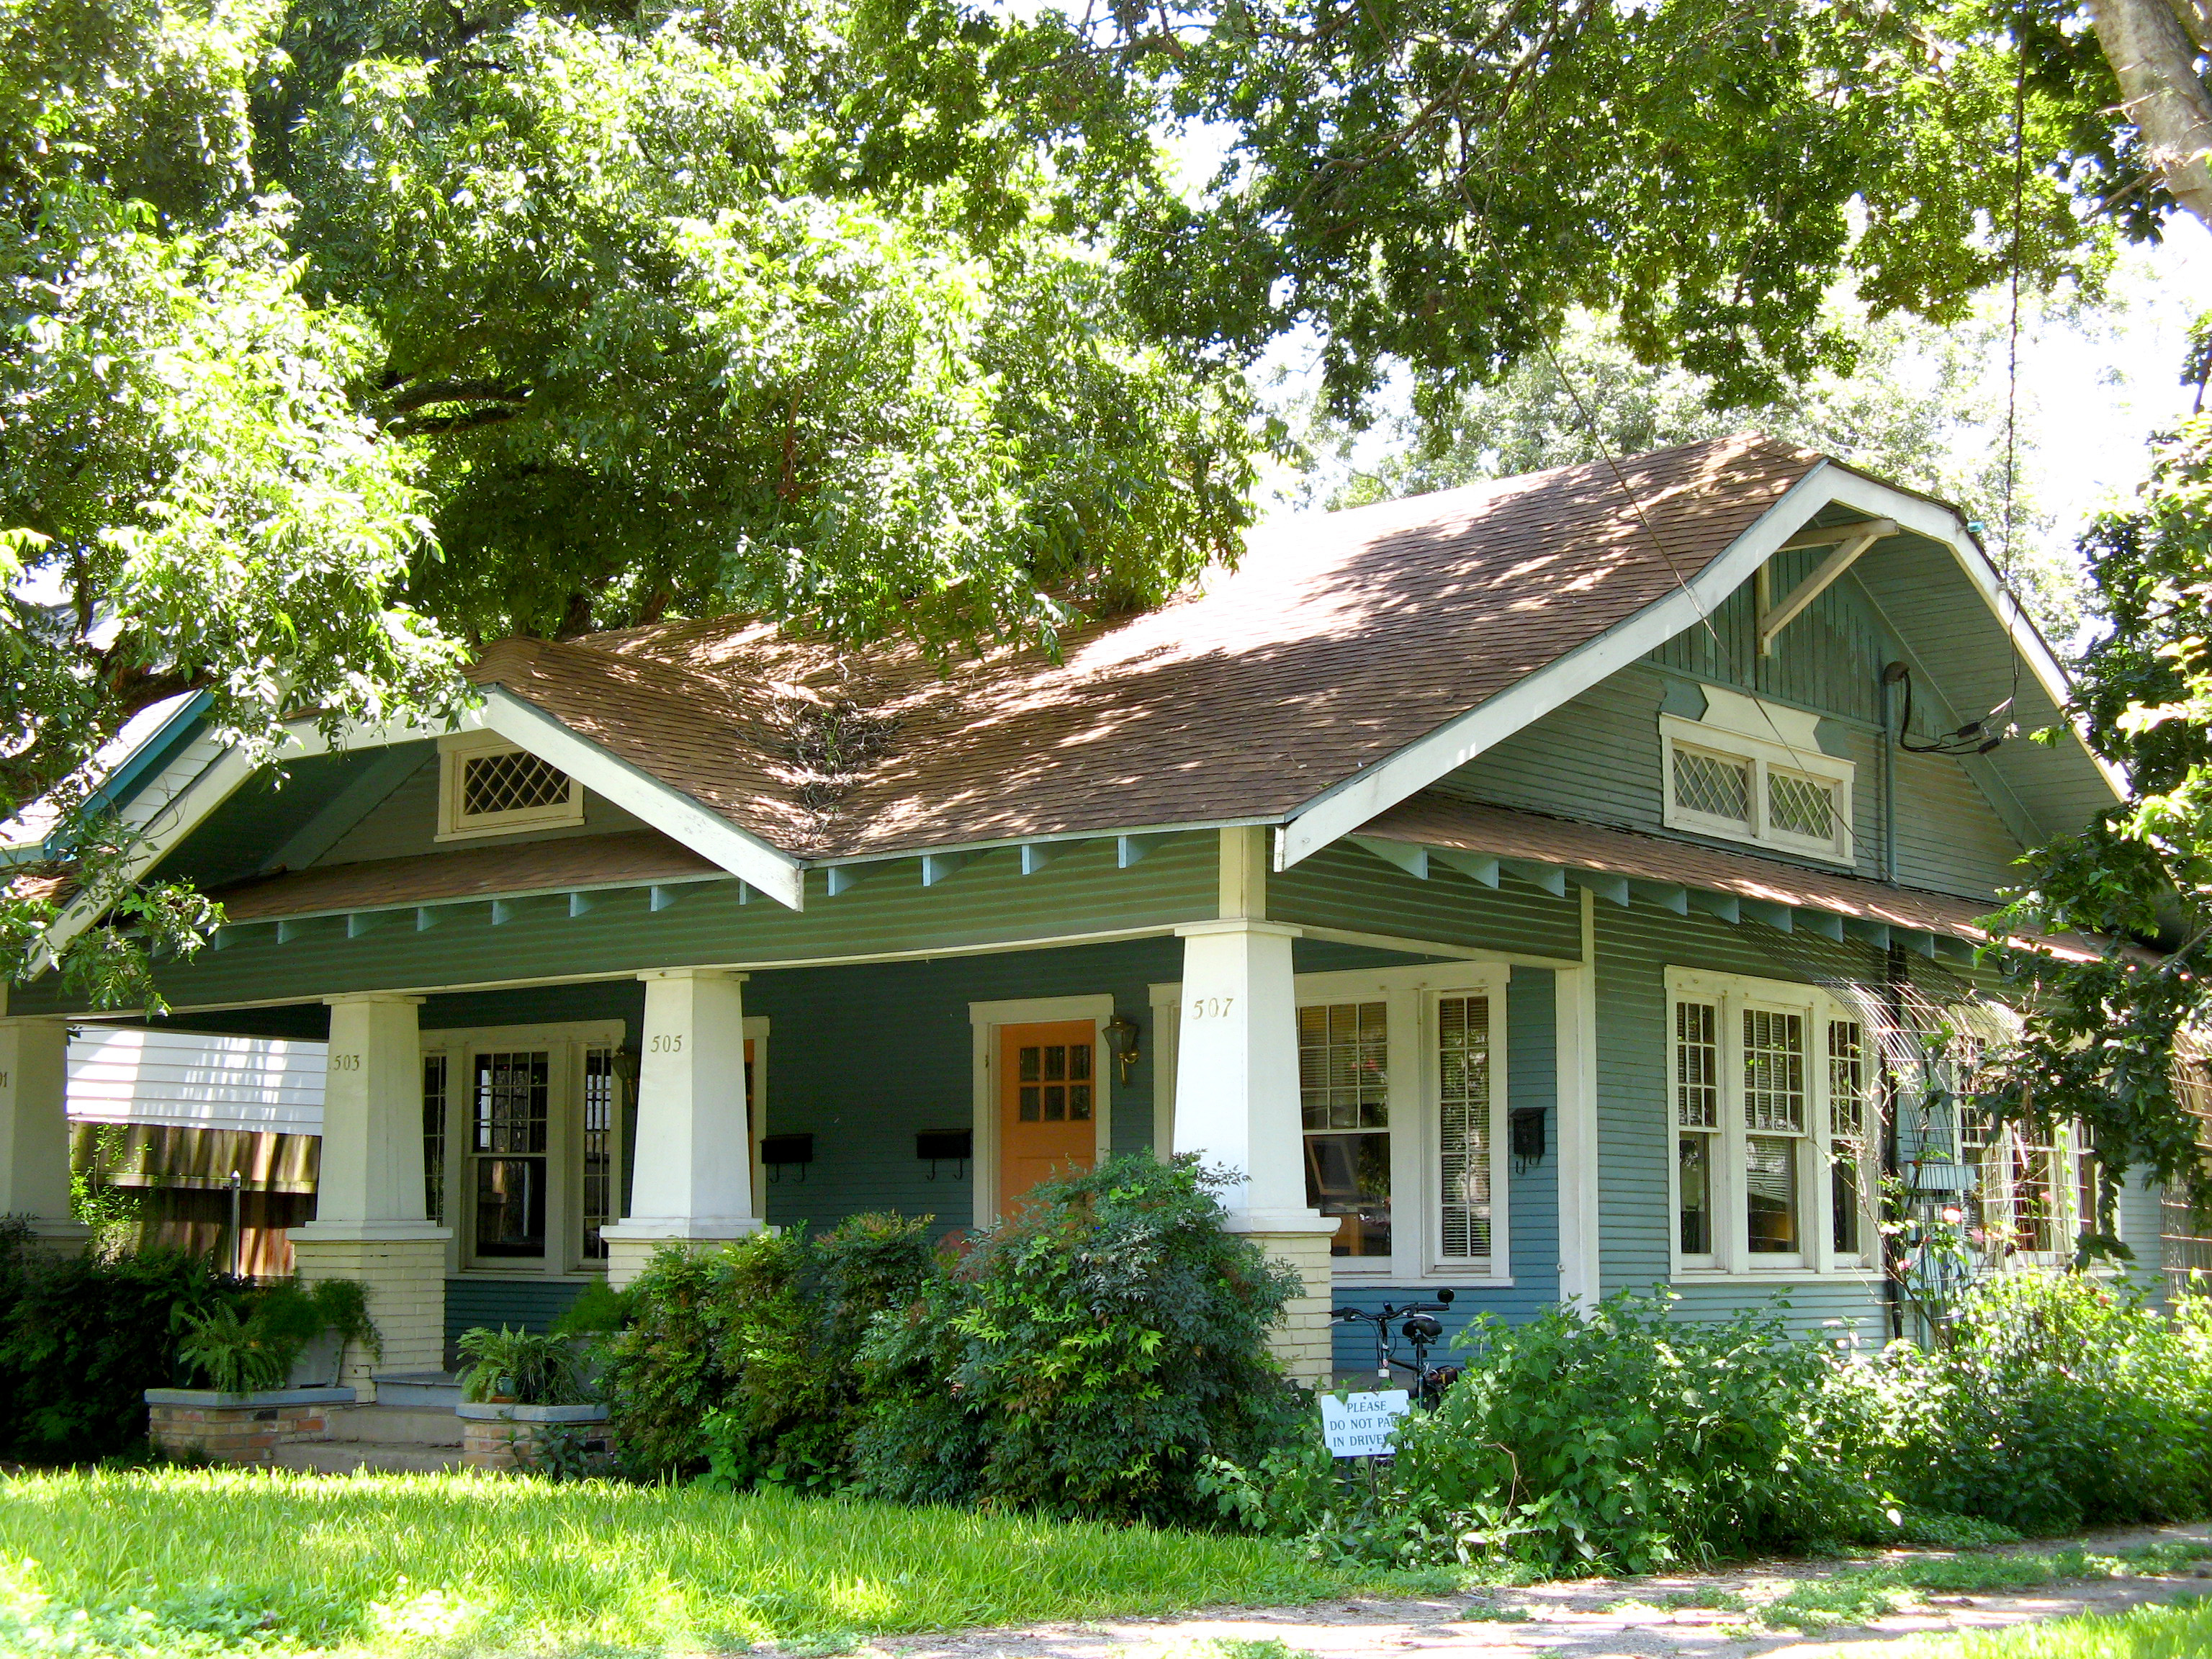 Showing the 6 photos of craftsman style homes for sale in texas